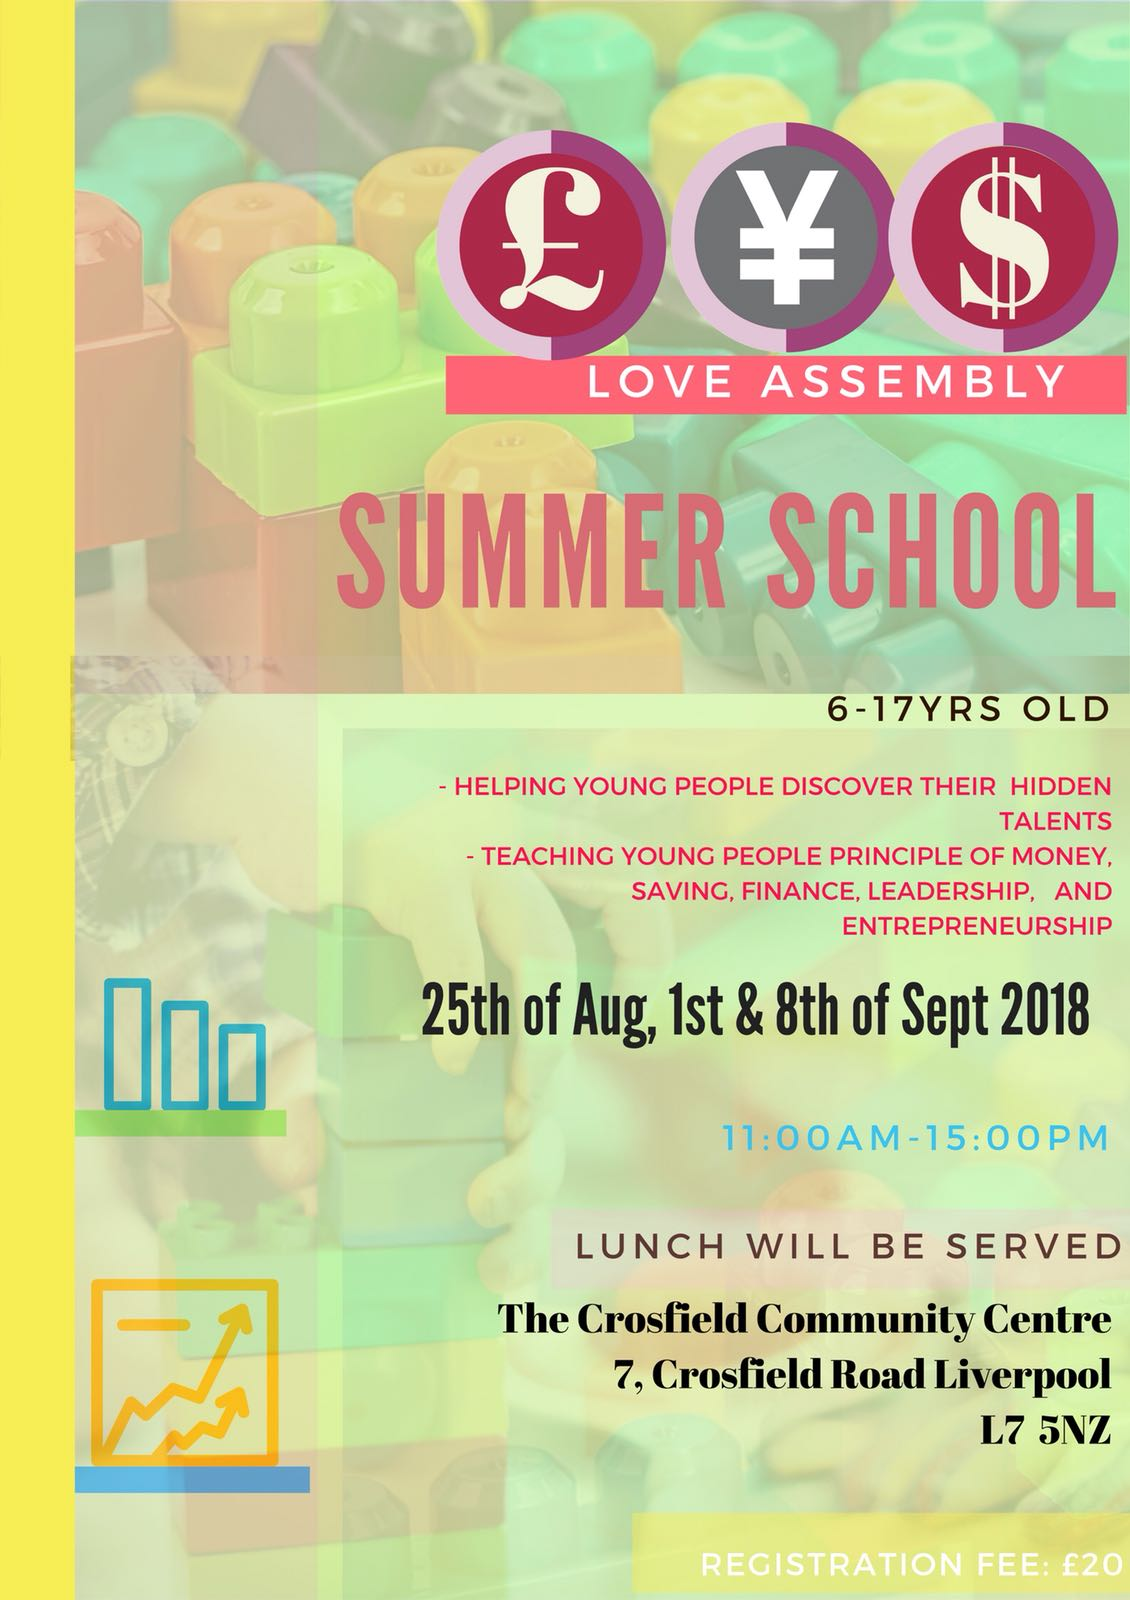 Summer School 2018 @ Crosfield Community Centre